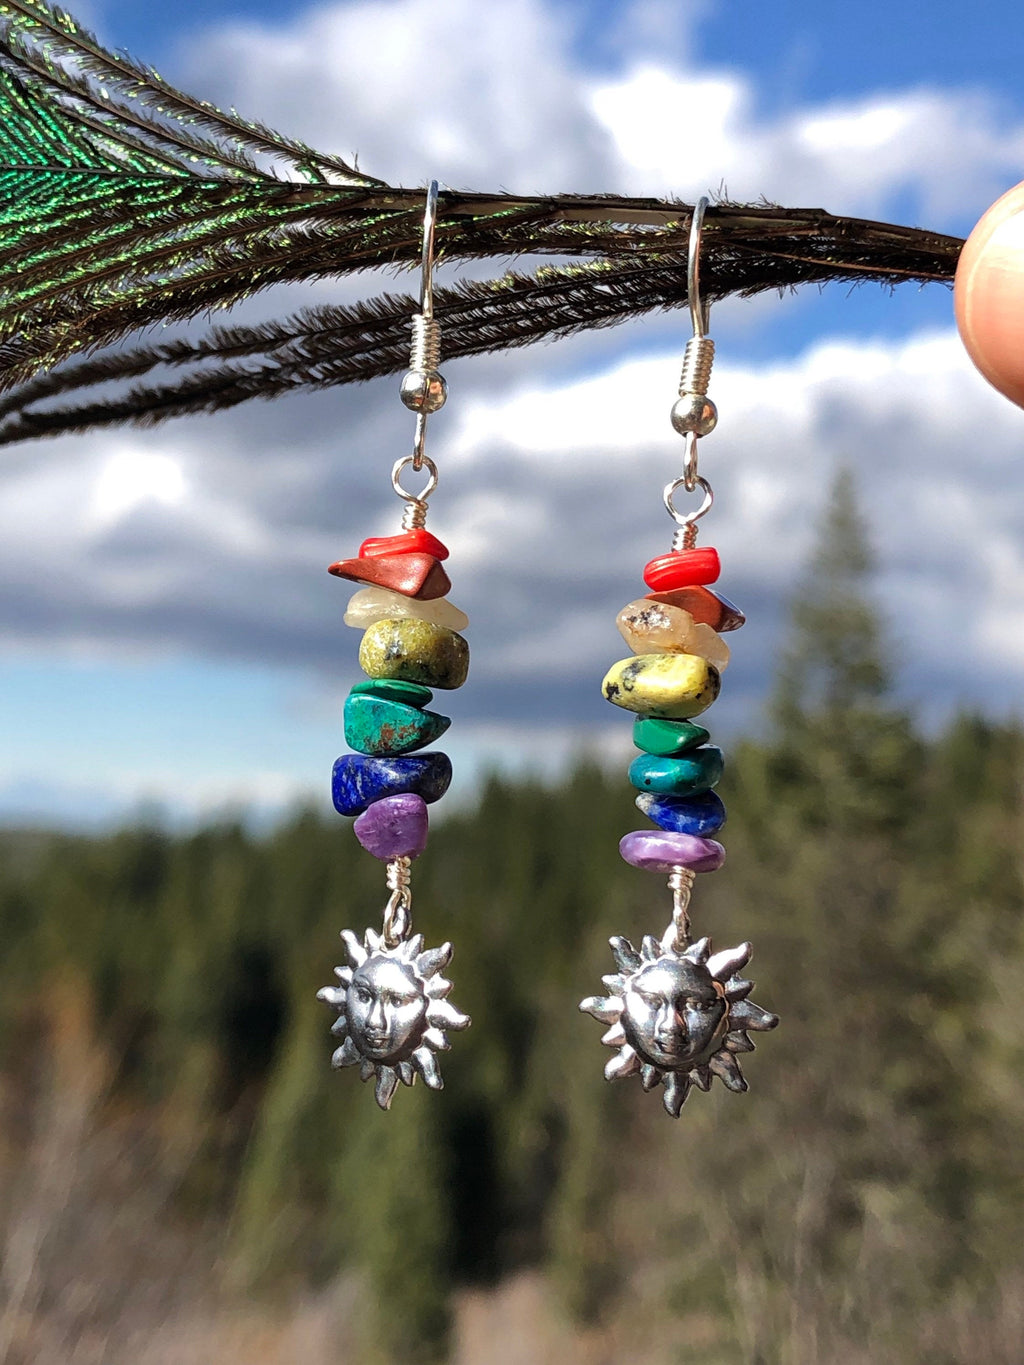 Rainbow Gemstone Earrings / Vintage Sun Charms / Natural Gemstone Stack / Colorful Jewelry / Rainbow Earrings / Celestial Jewelry